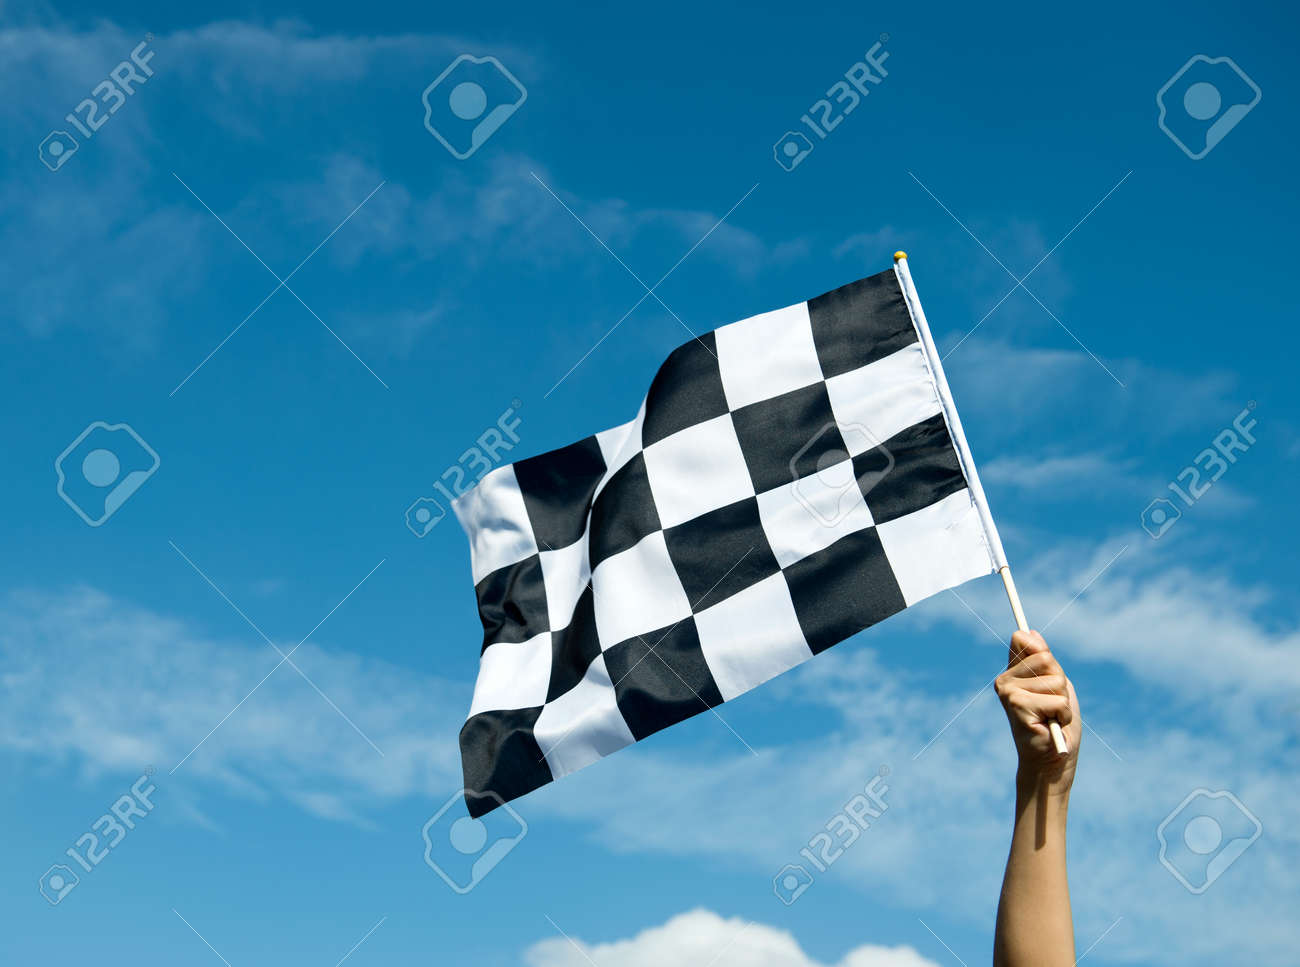 checkered race flag in hand. Stock Photo - 33756953